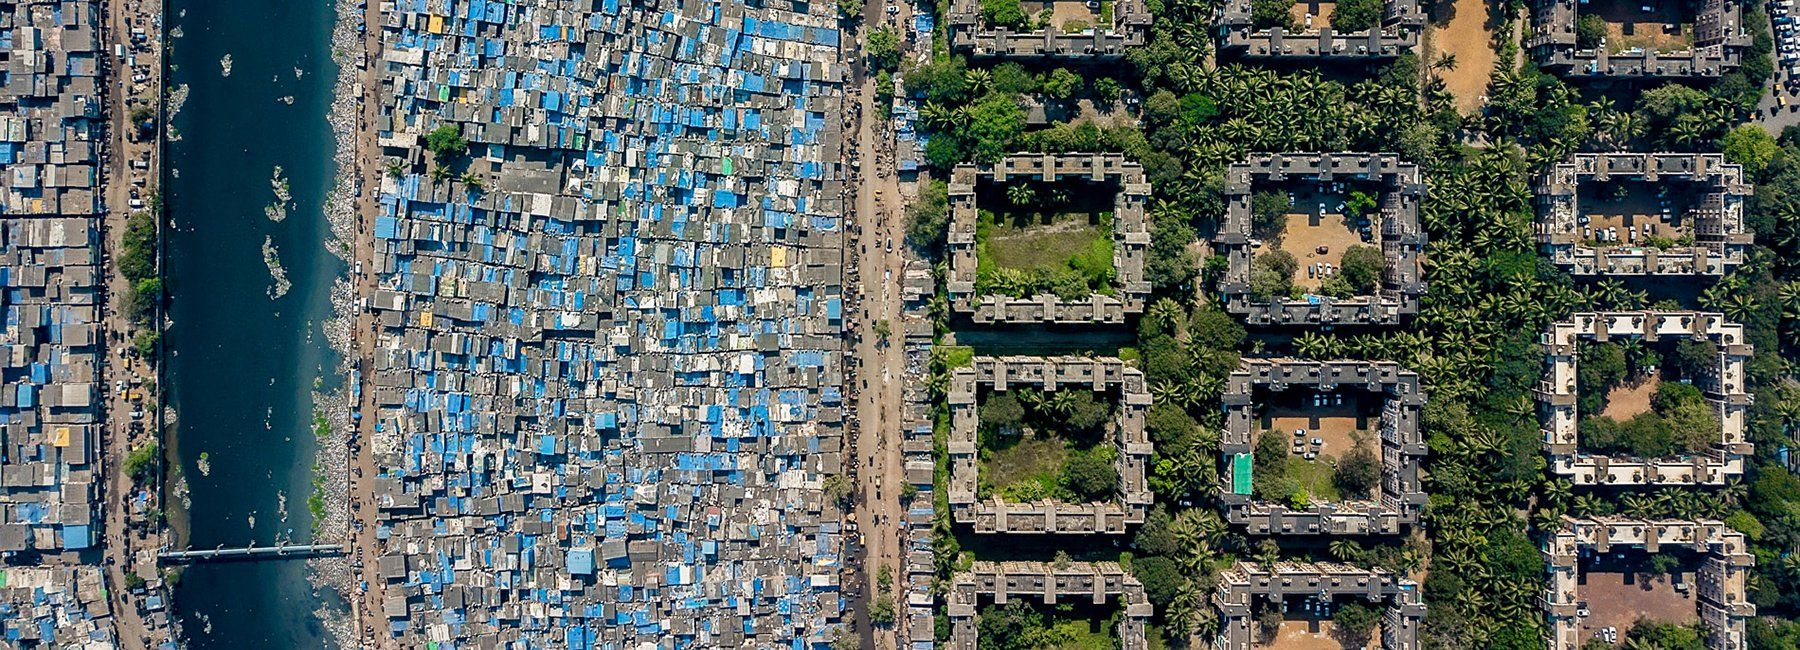 Unequal Scenes Drone Photography Documents Stark Social Inequality Landscape And Urbanism Aerial Photography Drone Drone Photography